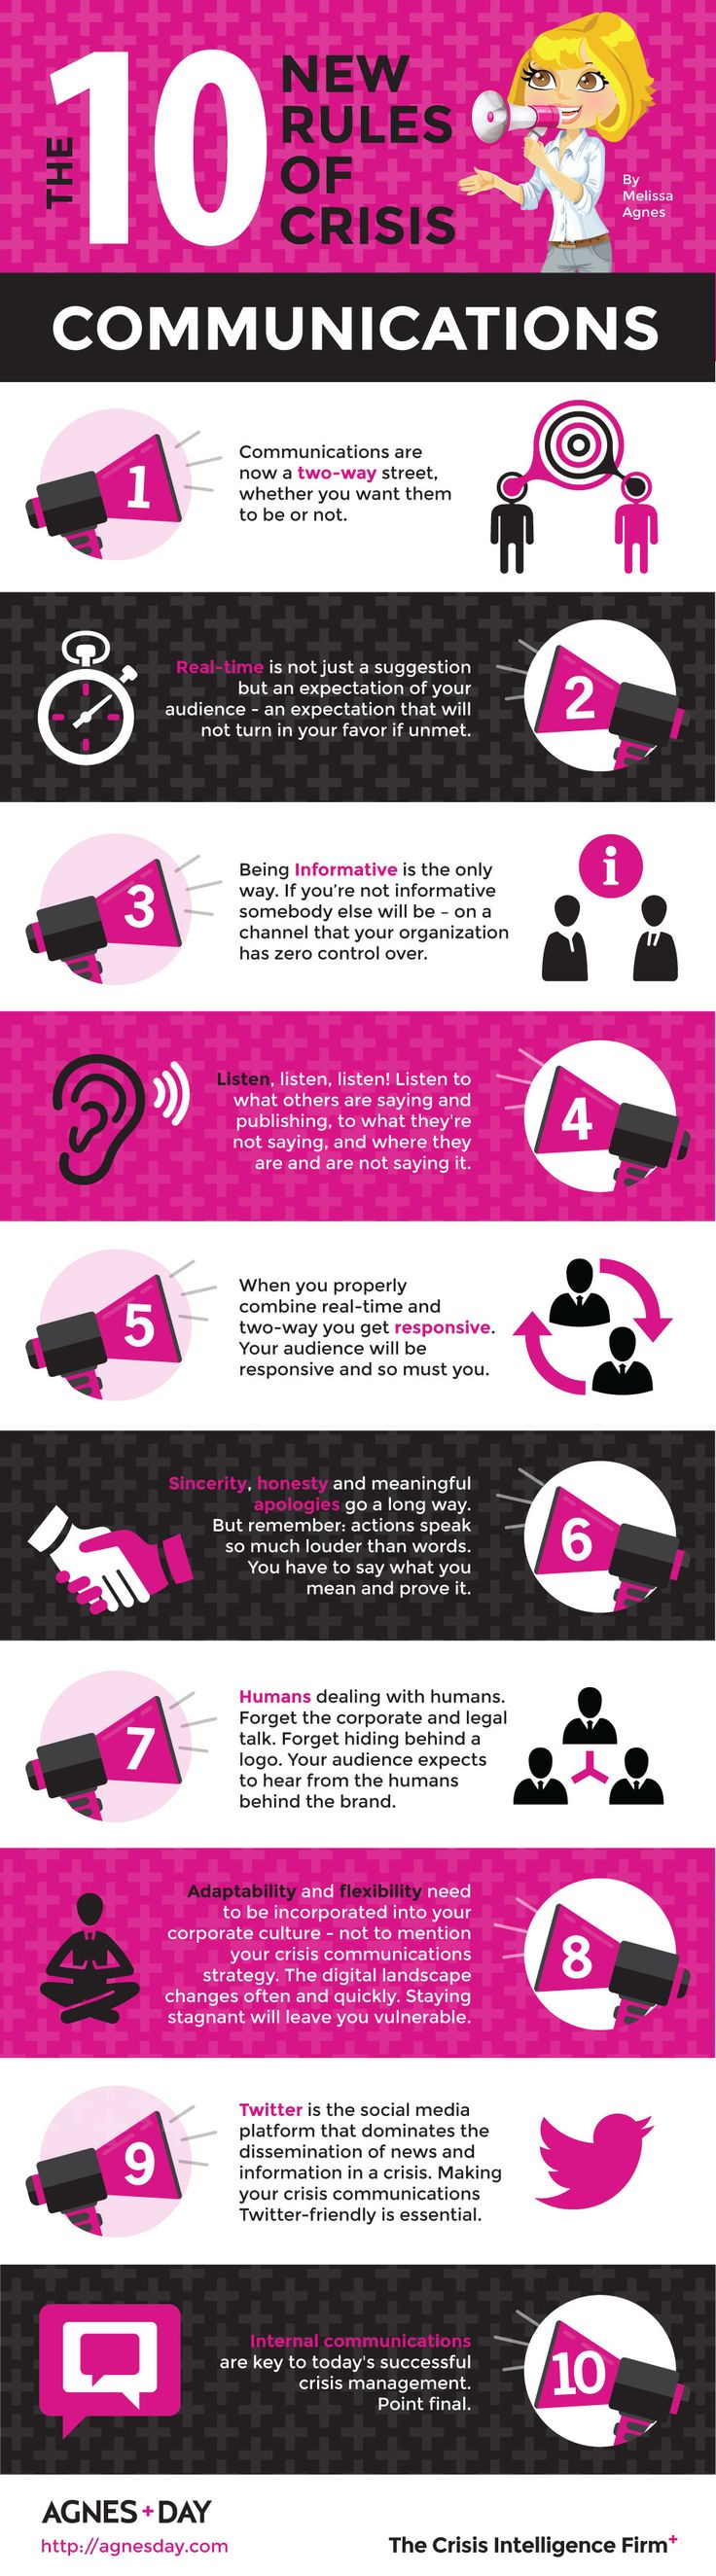 The 10 New Rules of Crisis Communications (Infographic) #crisis #communication